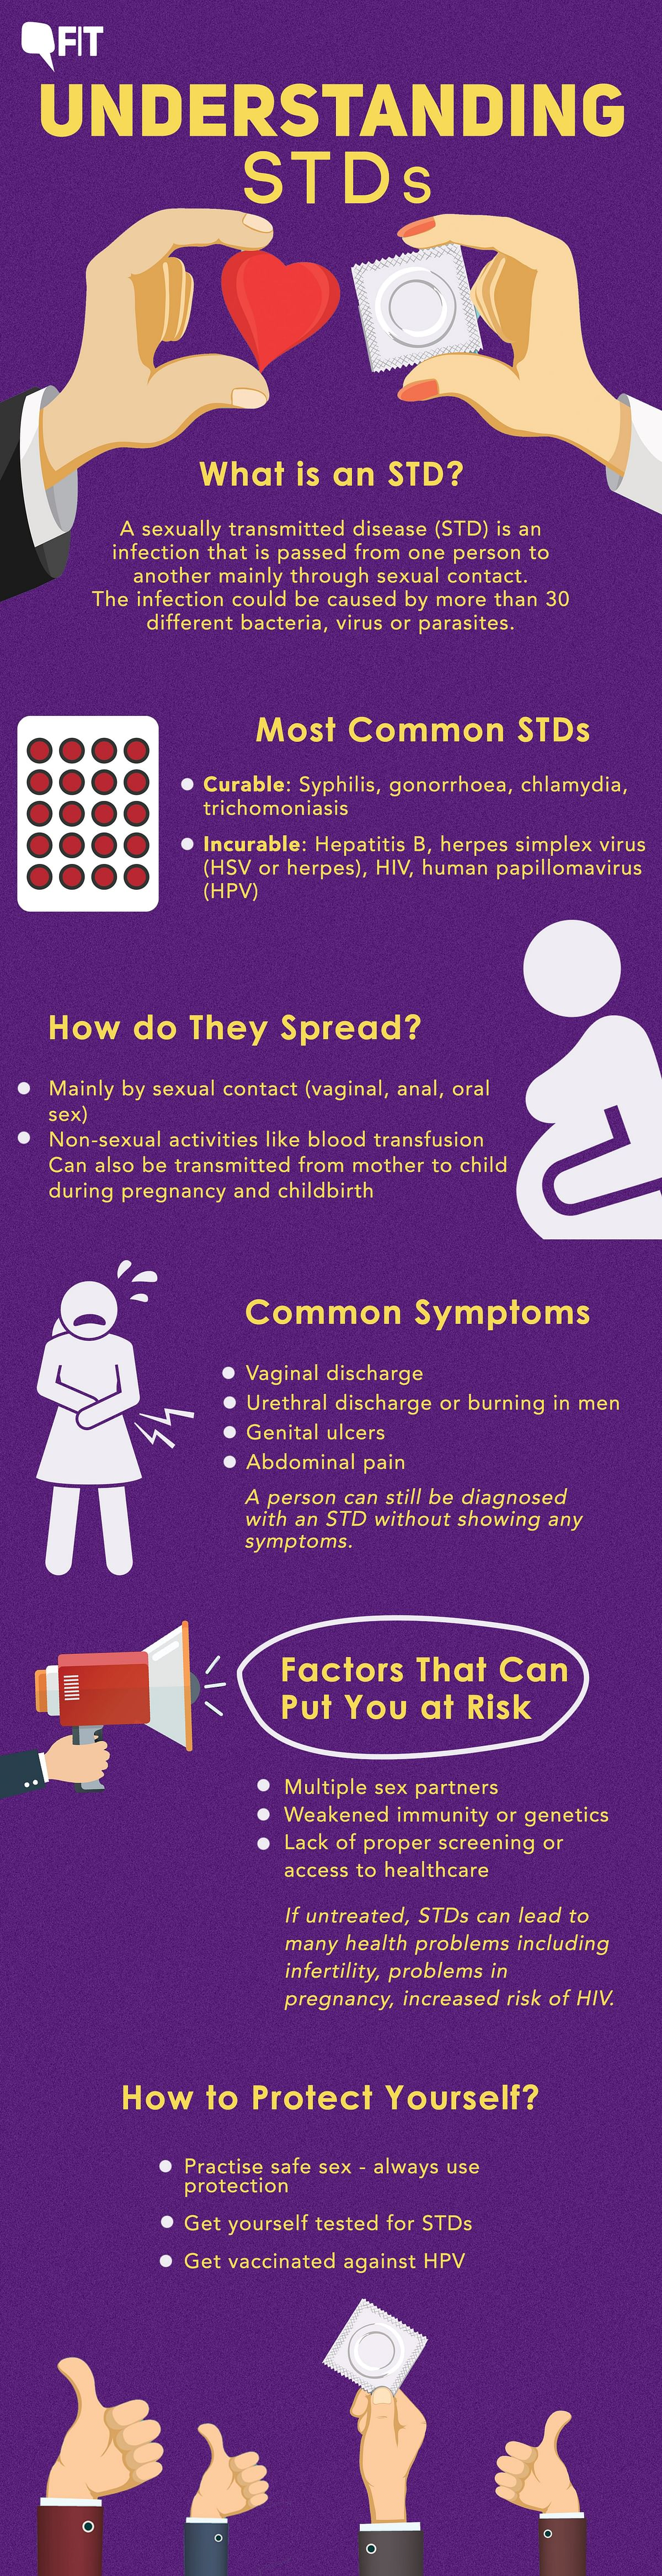 All you need to know about STDs.